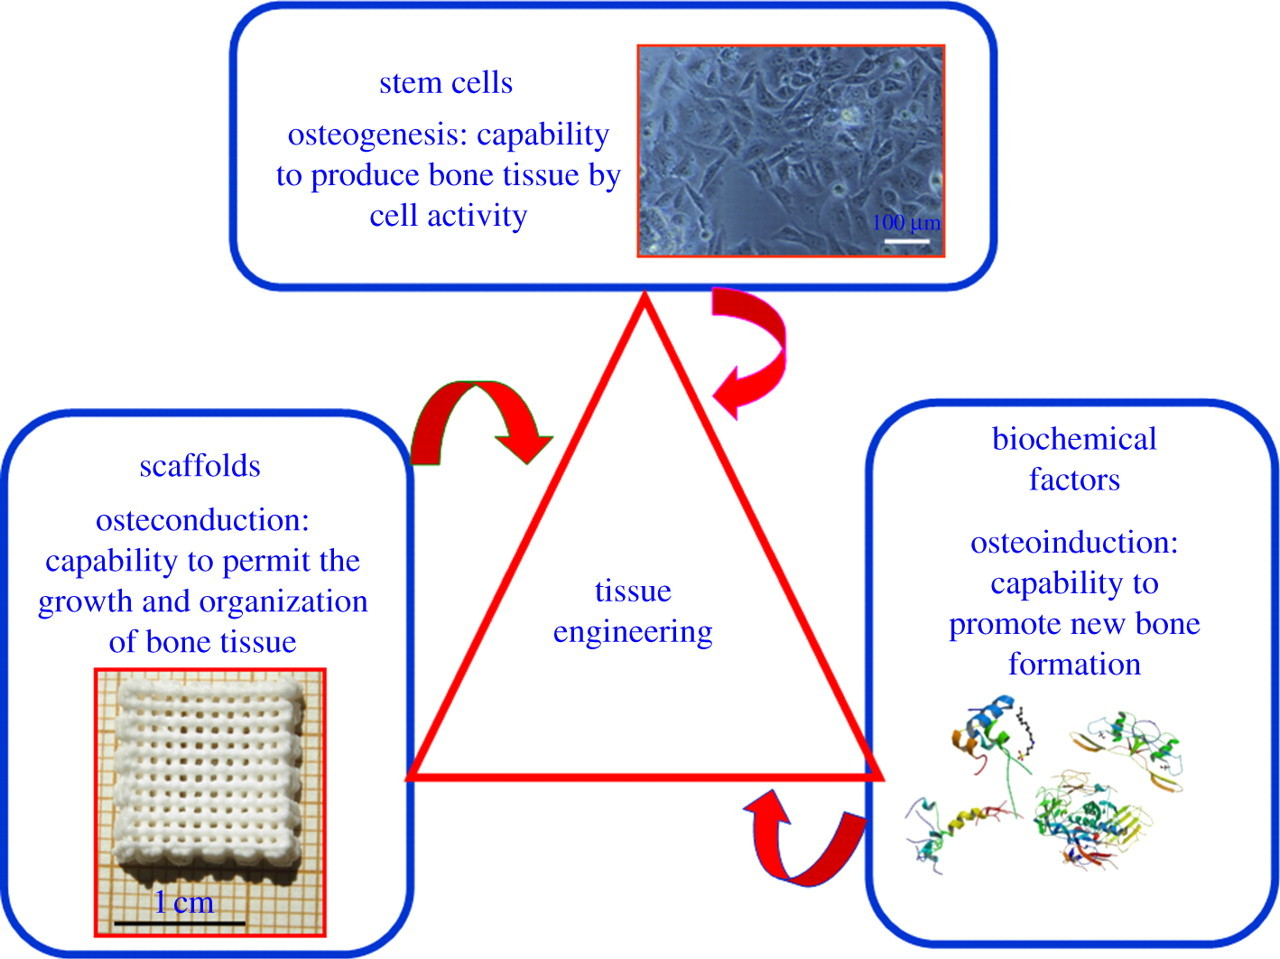 Structure And Functionalization Of Mesoporous Bioceramics For Bone Tissue Regeneration And Local Drug Delivery Philosophical Transactions Of The Royal Society A Mathematical Physical And Engineering Sciences